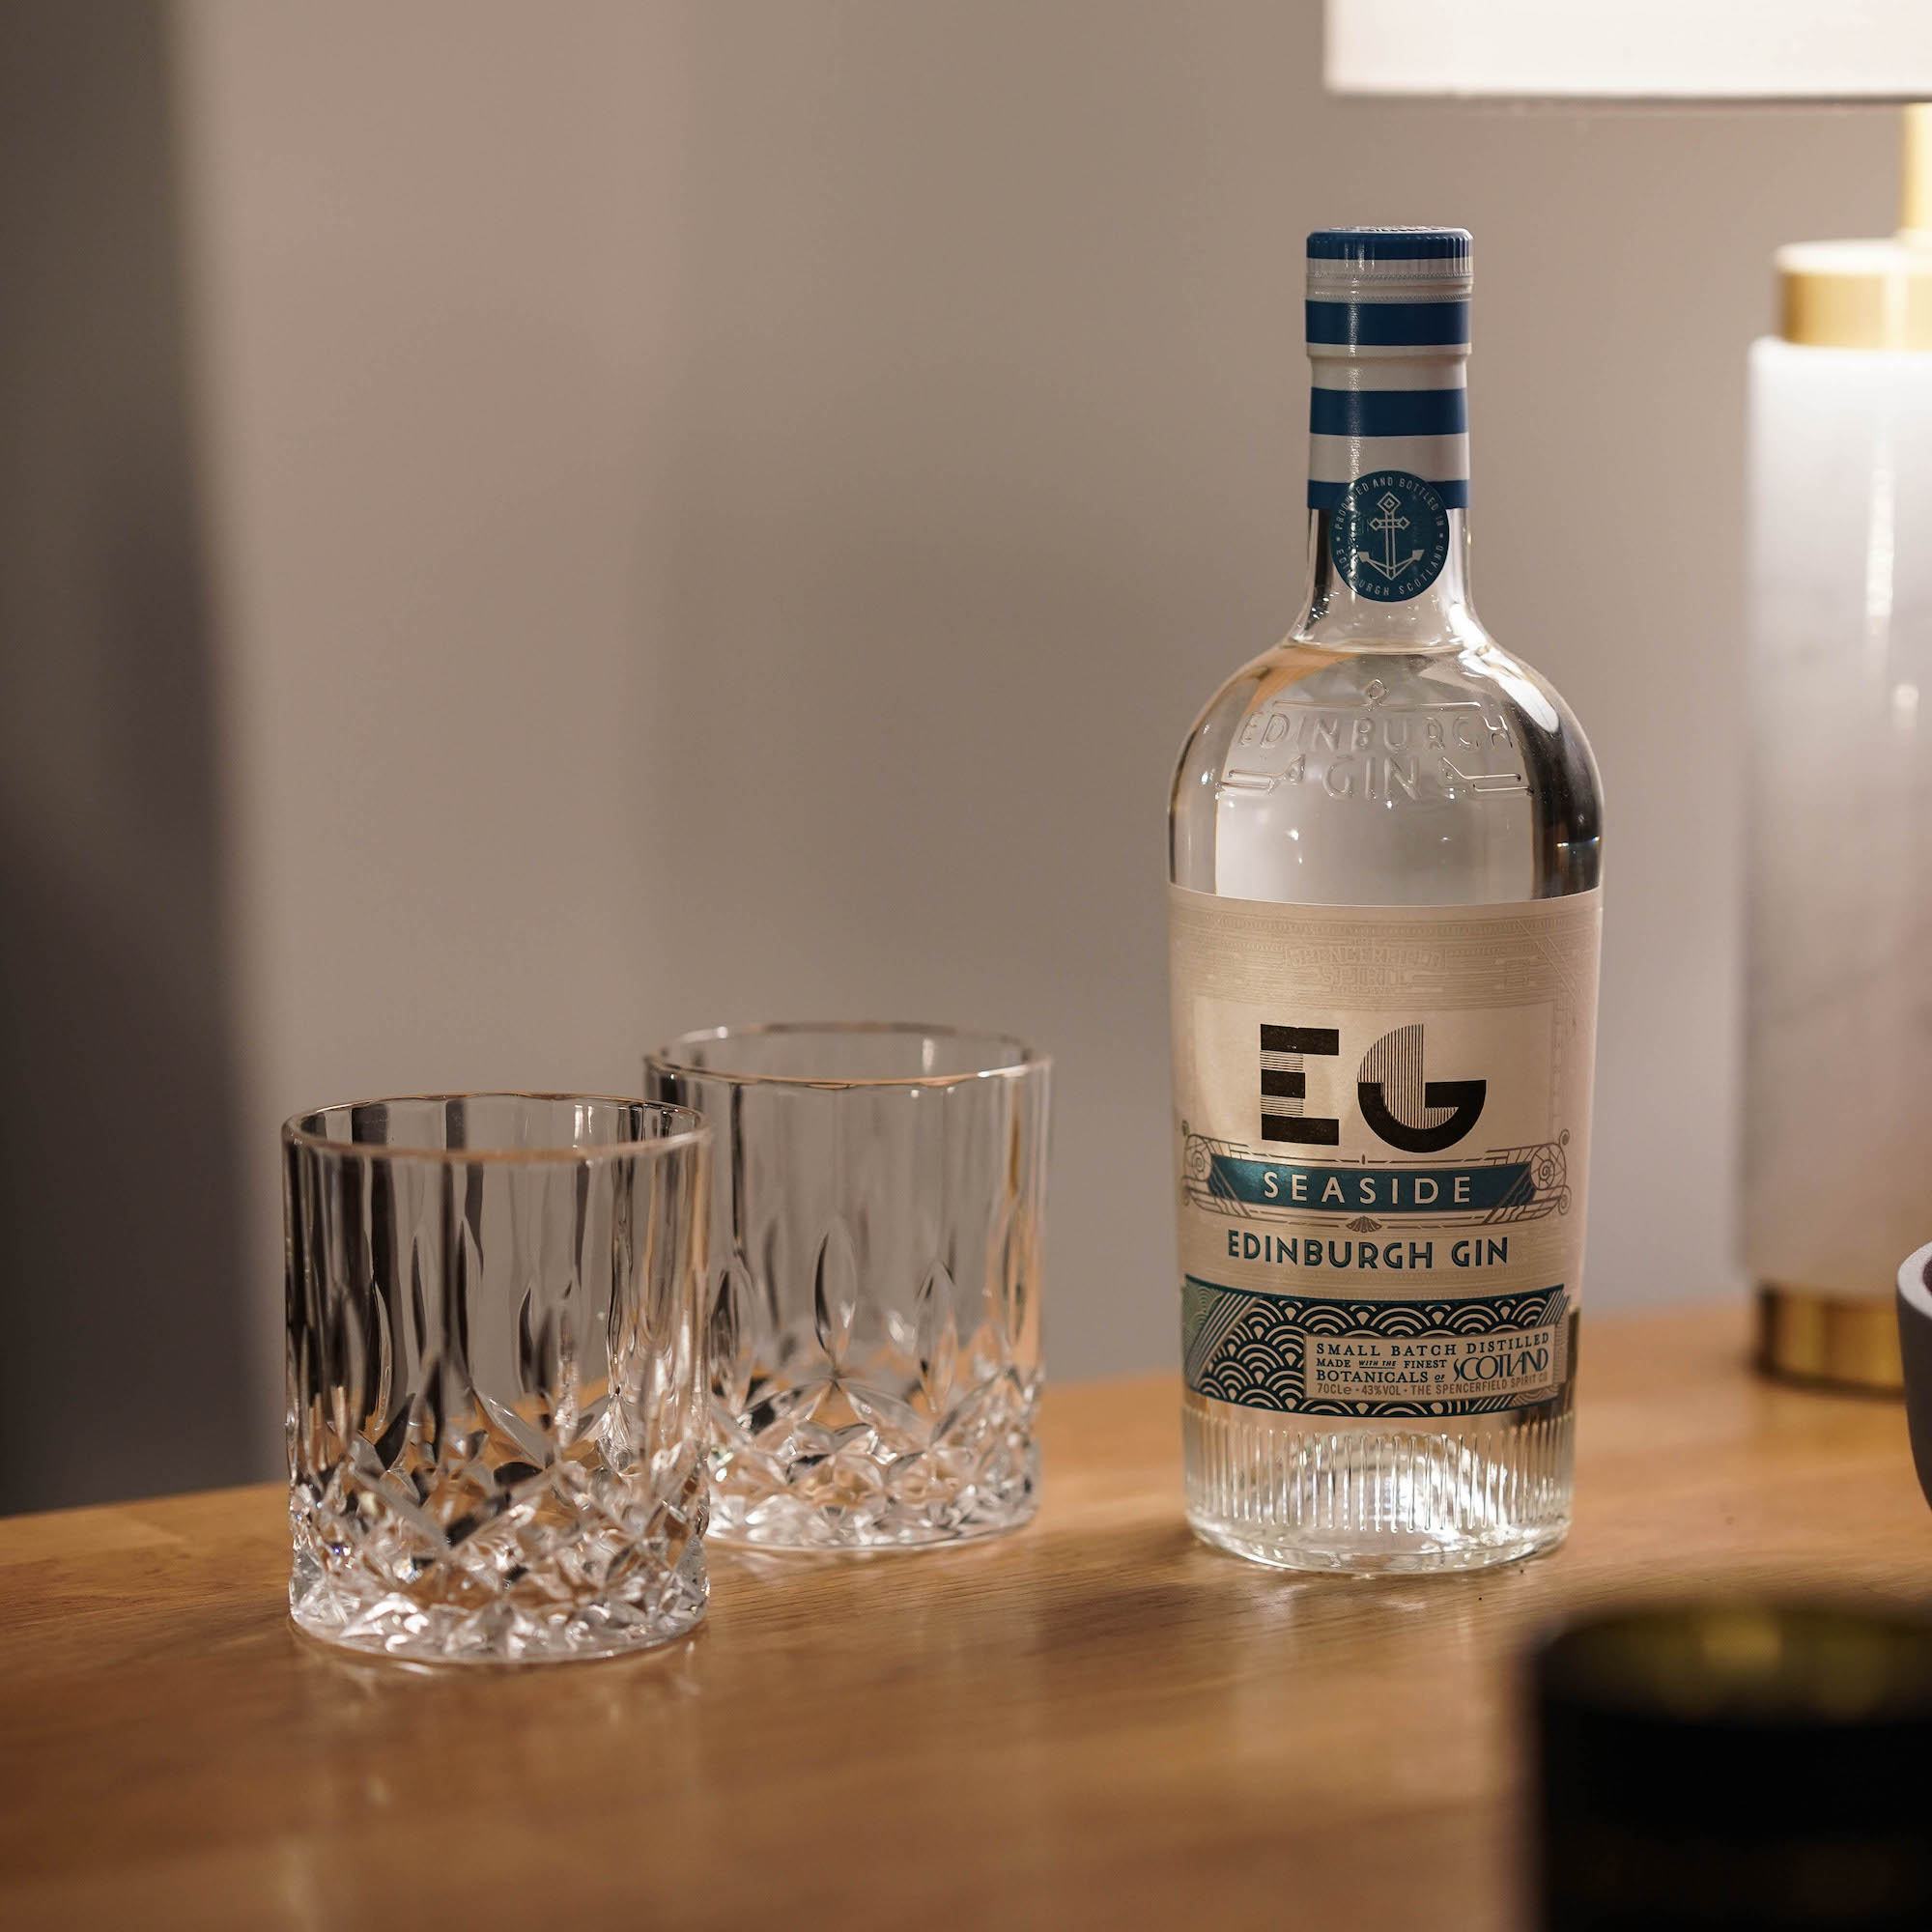 eg seaside edinburgh gin